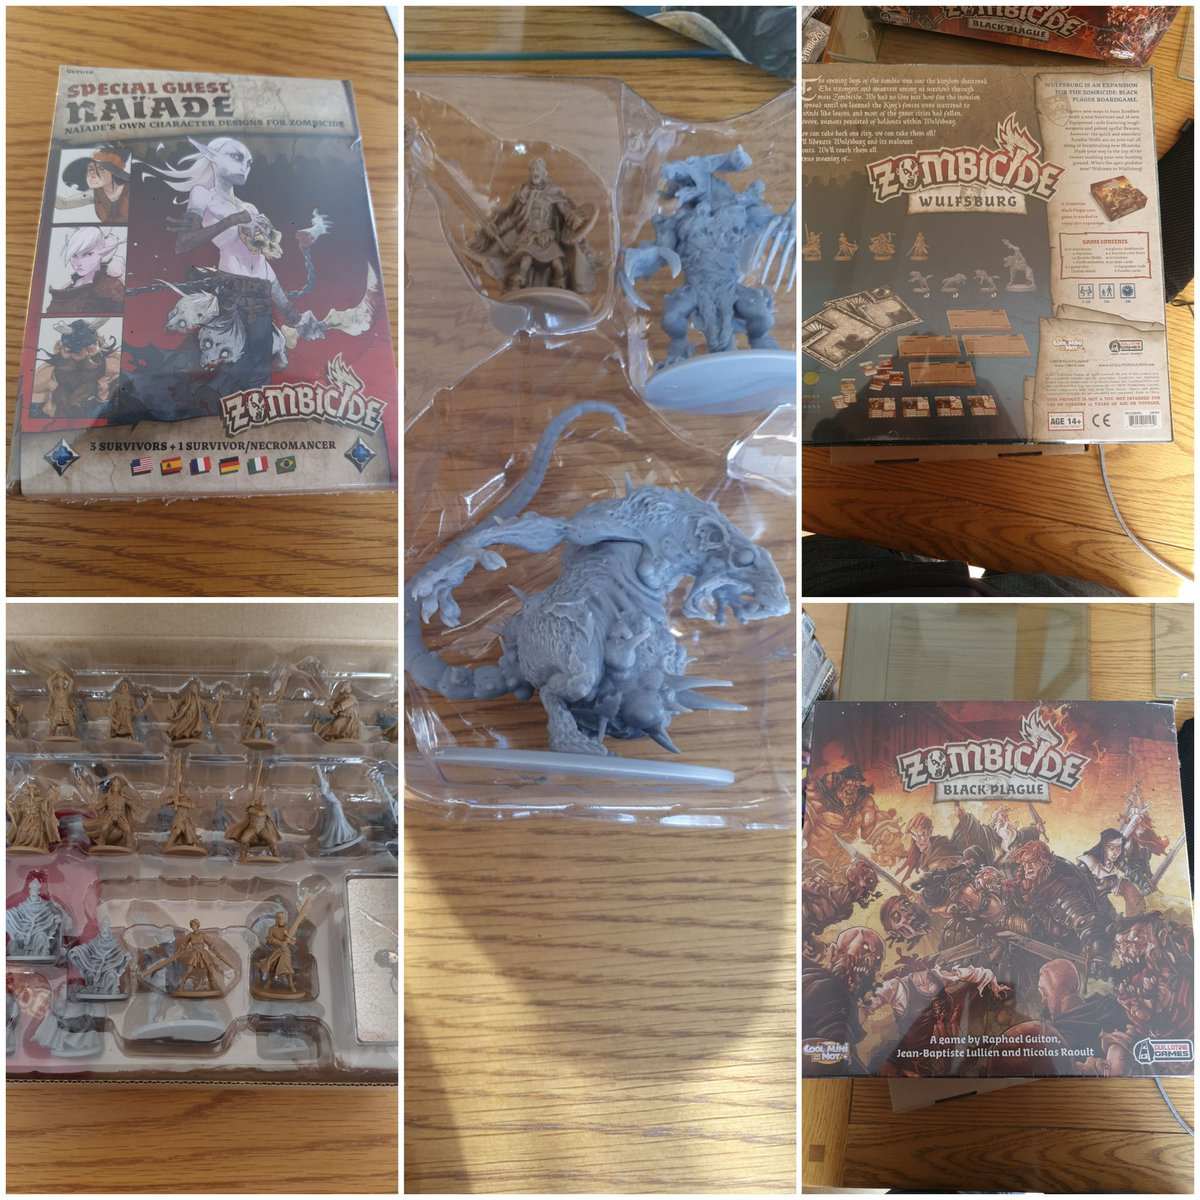 Just been in the garage and listed all my #zombicide  black plague ks stuff... not even played it yet so less games mountain hopefully https://t.co/MpXCO7ZlYP